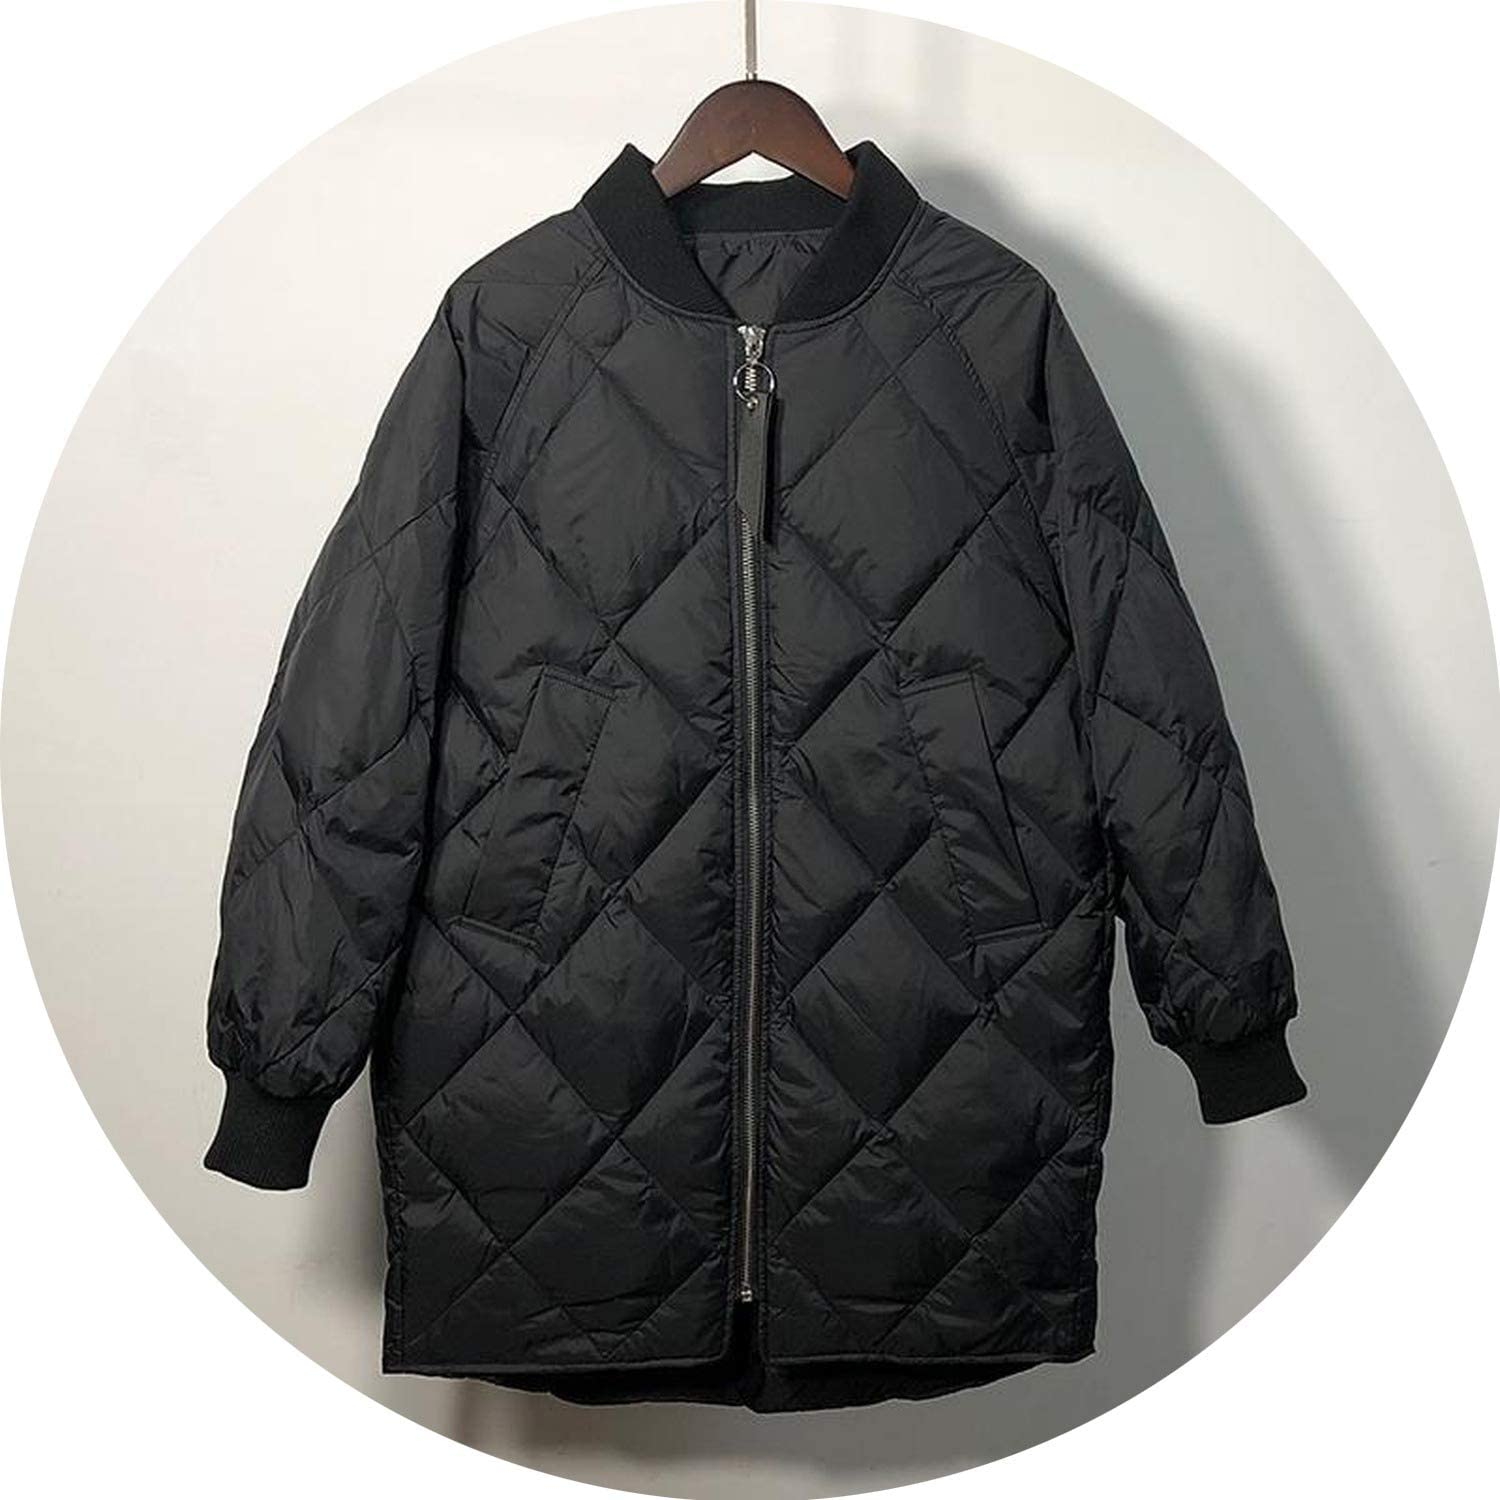 100Expectations winter coat Light Down Jackets 90% White Duck Down Loose Fit Parkas Medium Long Warm Snow Overcoats